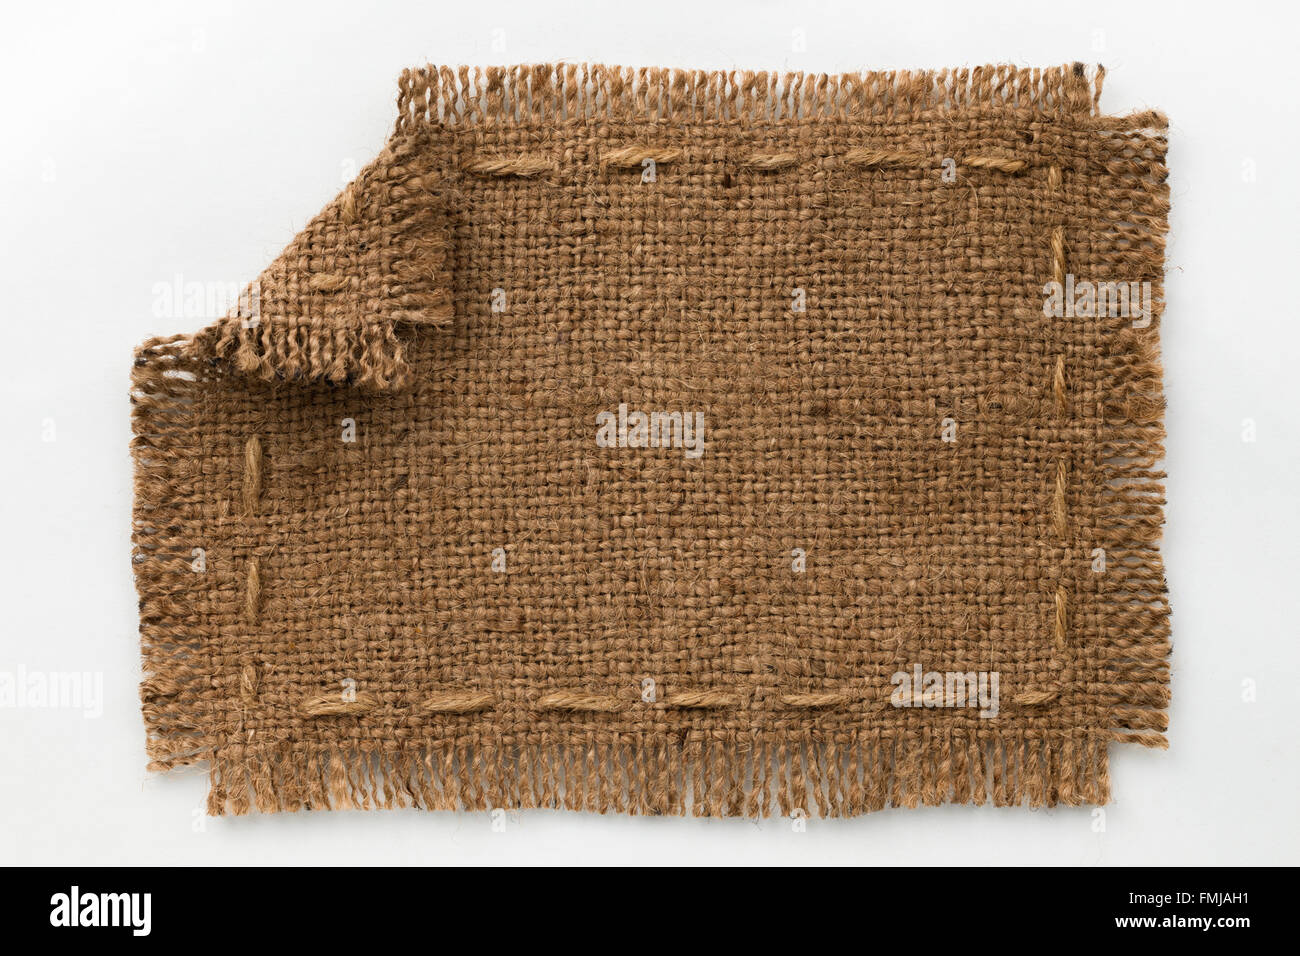 Frame of burlap with curled edges, lies on a white background, can ...